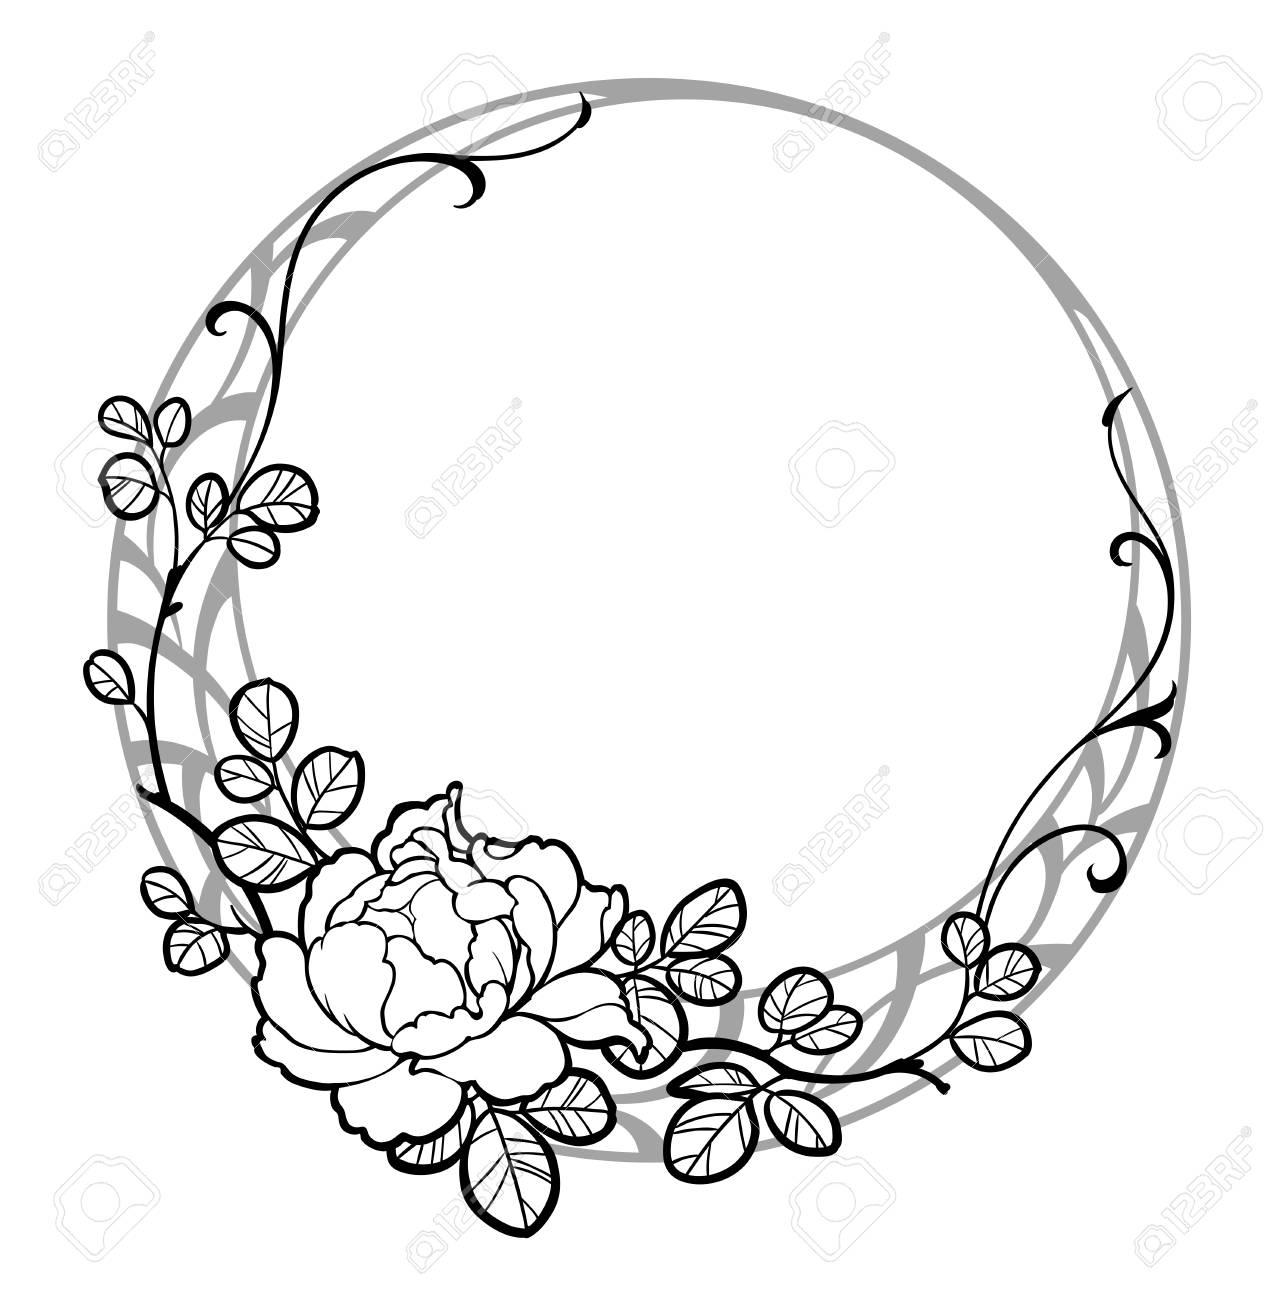 Hand Drawn Decorative Round Frame With Peony Rose Flower. Black ...